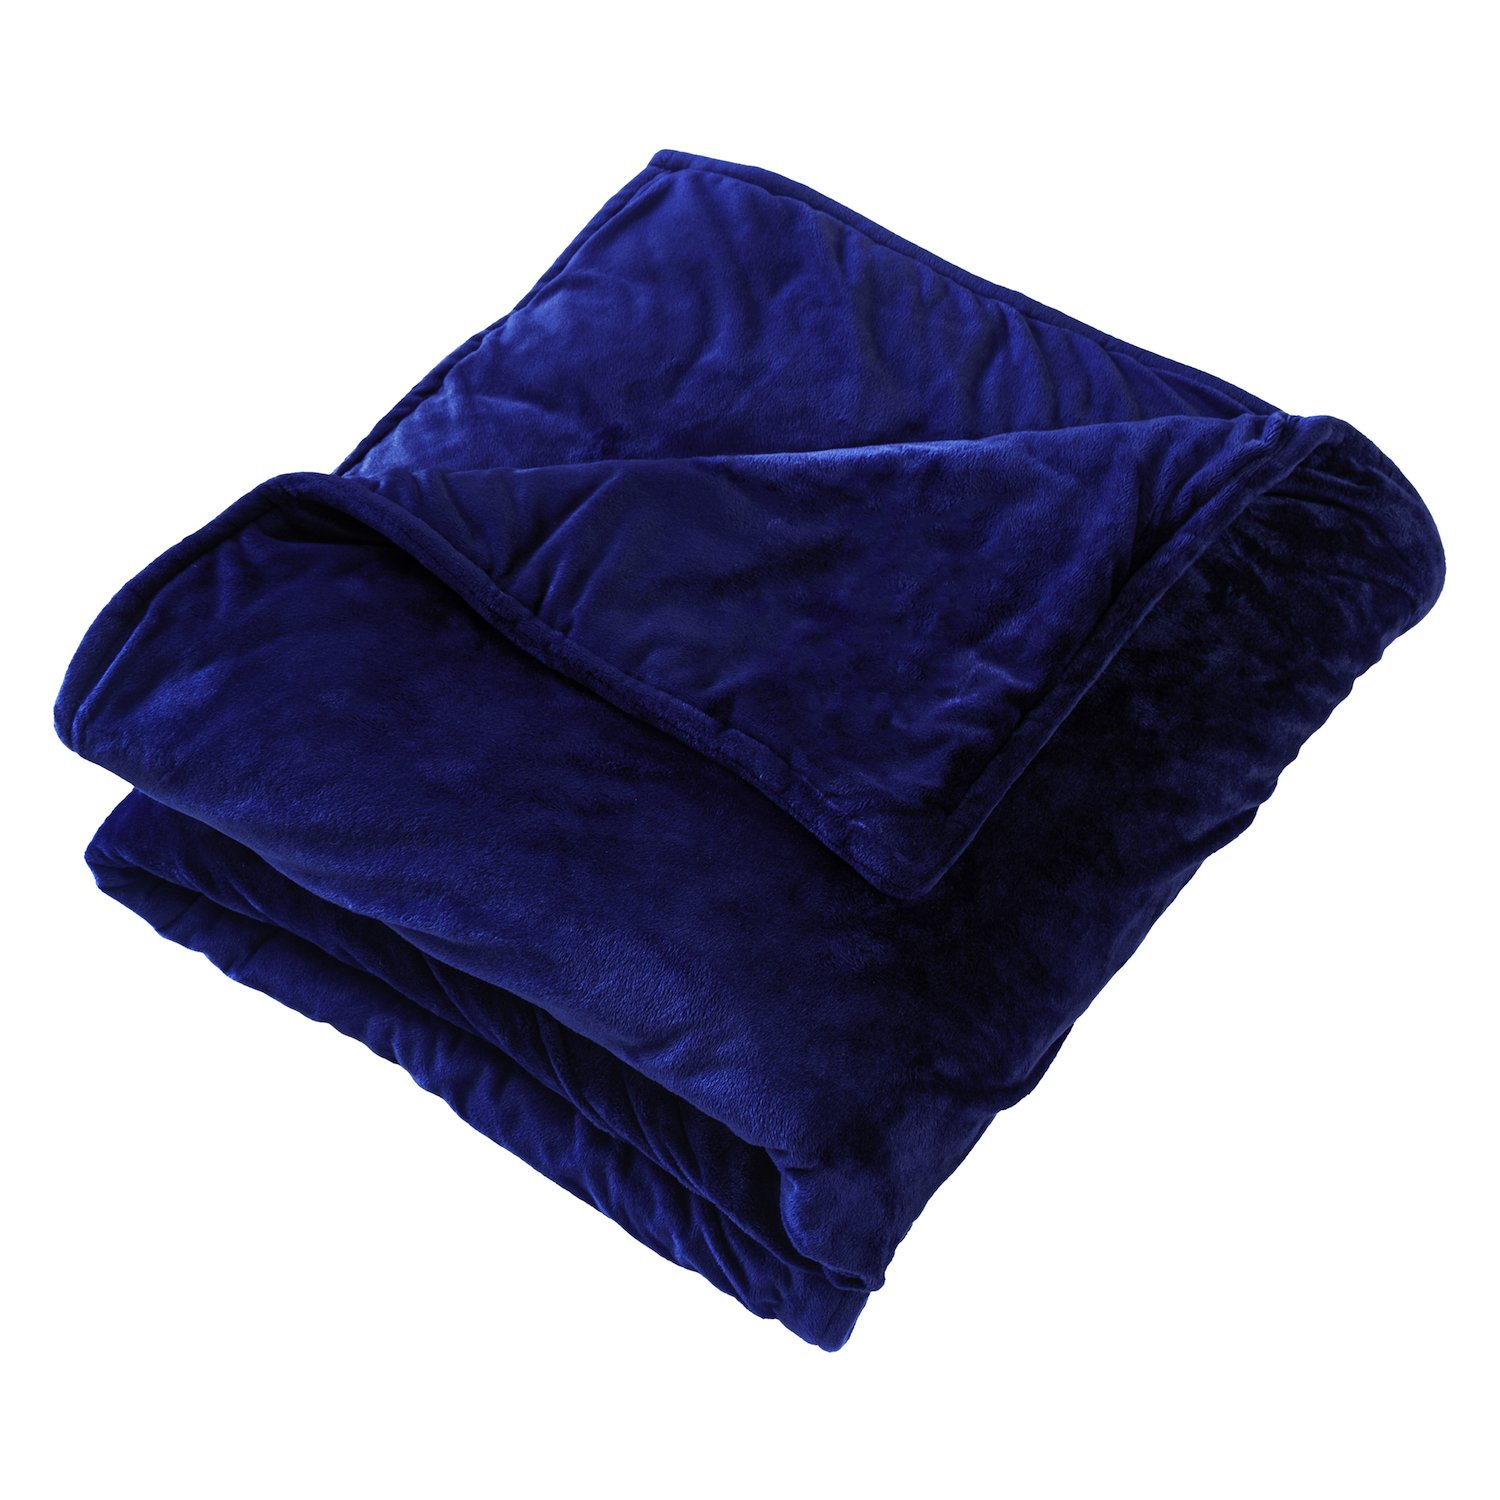 Premium Quality Soft Minky Blue Sensory Weighted Blanket - 12 Lb 48Wx72L, 4ftx6ft - For Women, Men, Adults, Children, Autism - Reduces Anxiety, Stress - Promotes Restful Sleep, Machine Wash and Dry